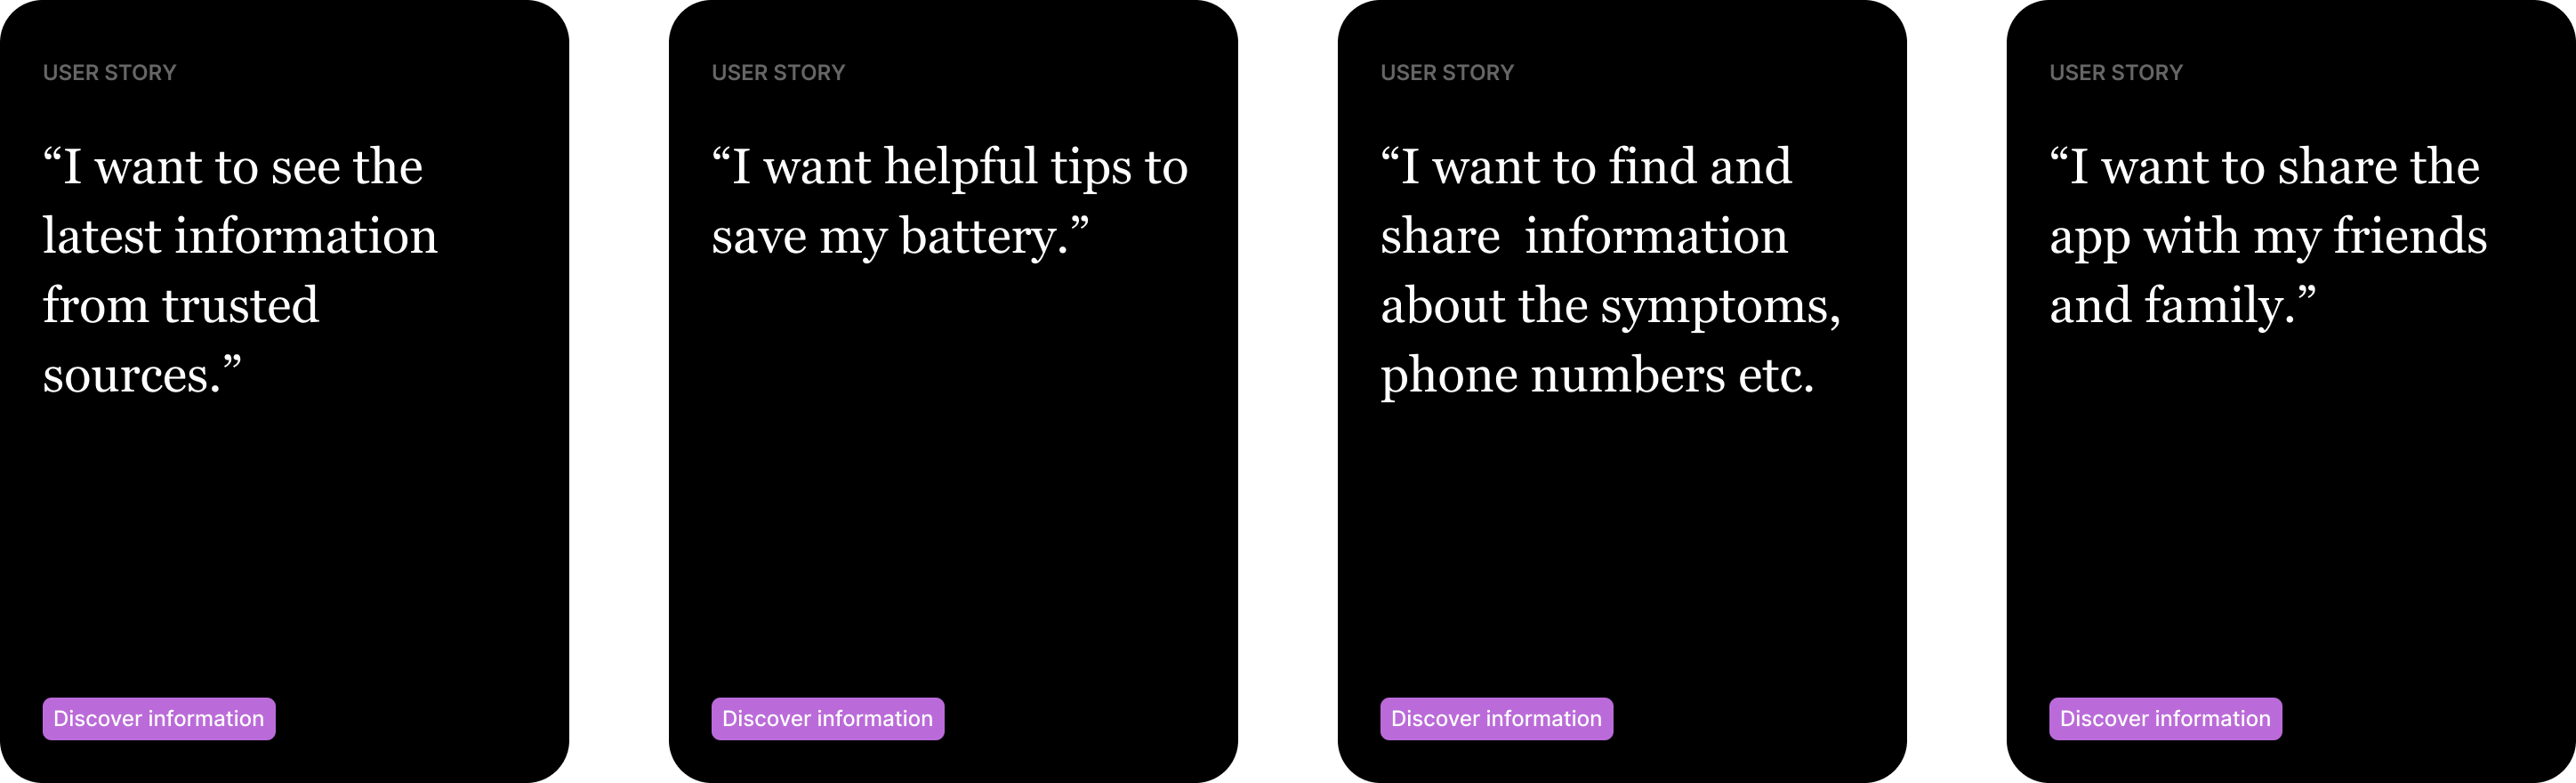 User stories describing various features which could be added at a later date